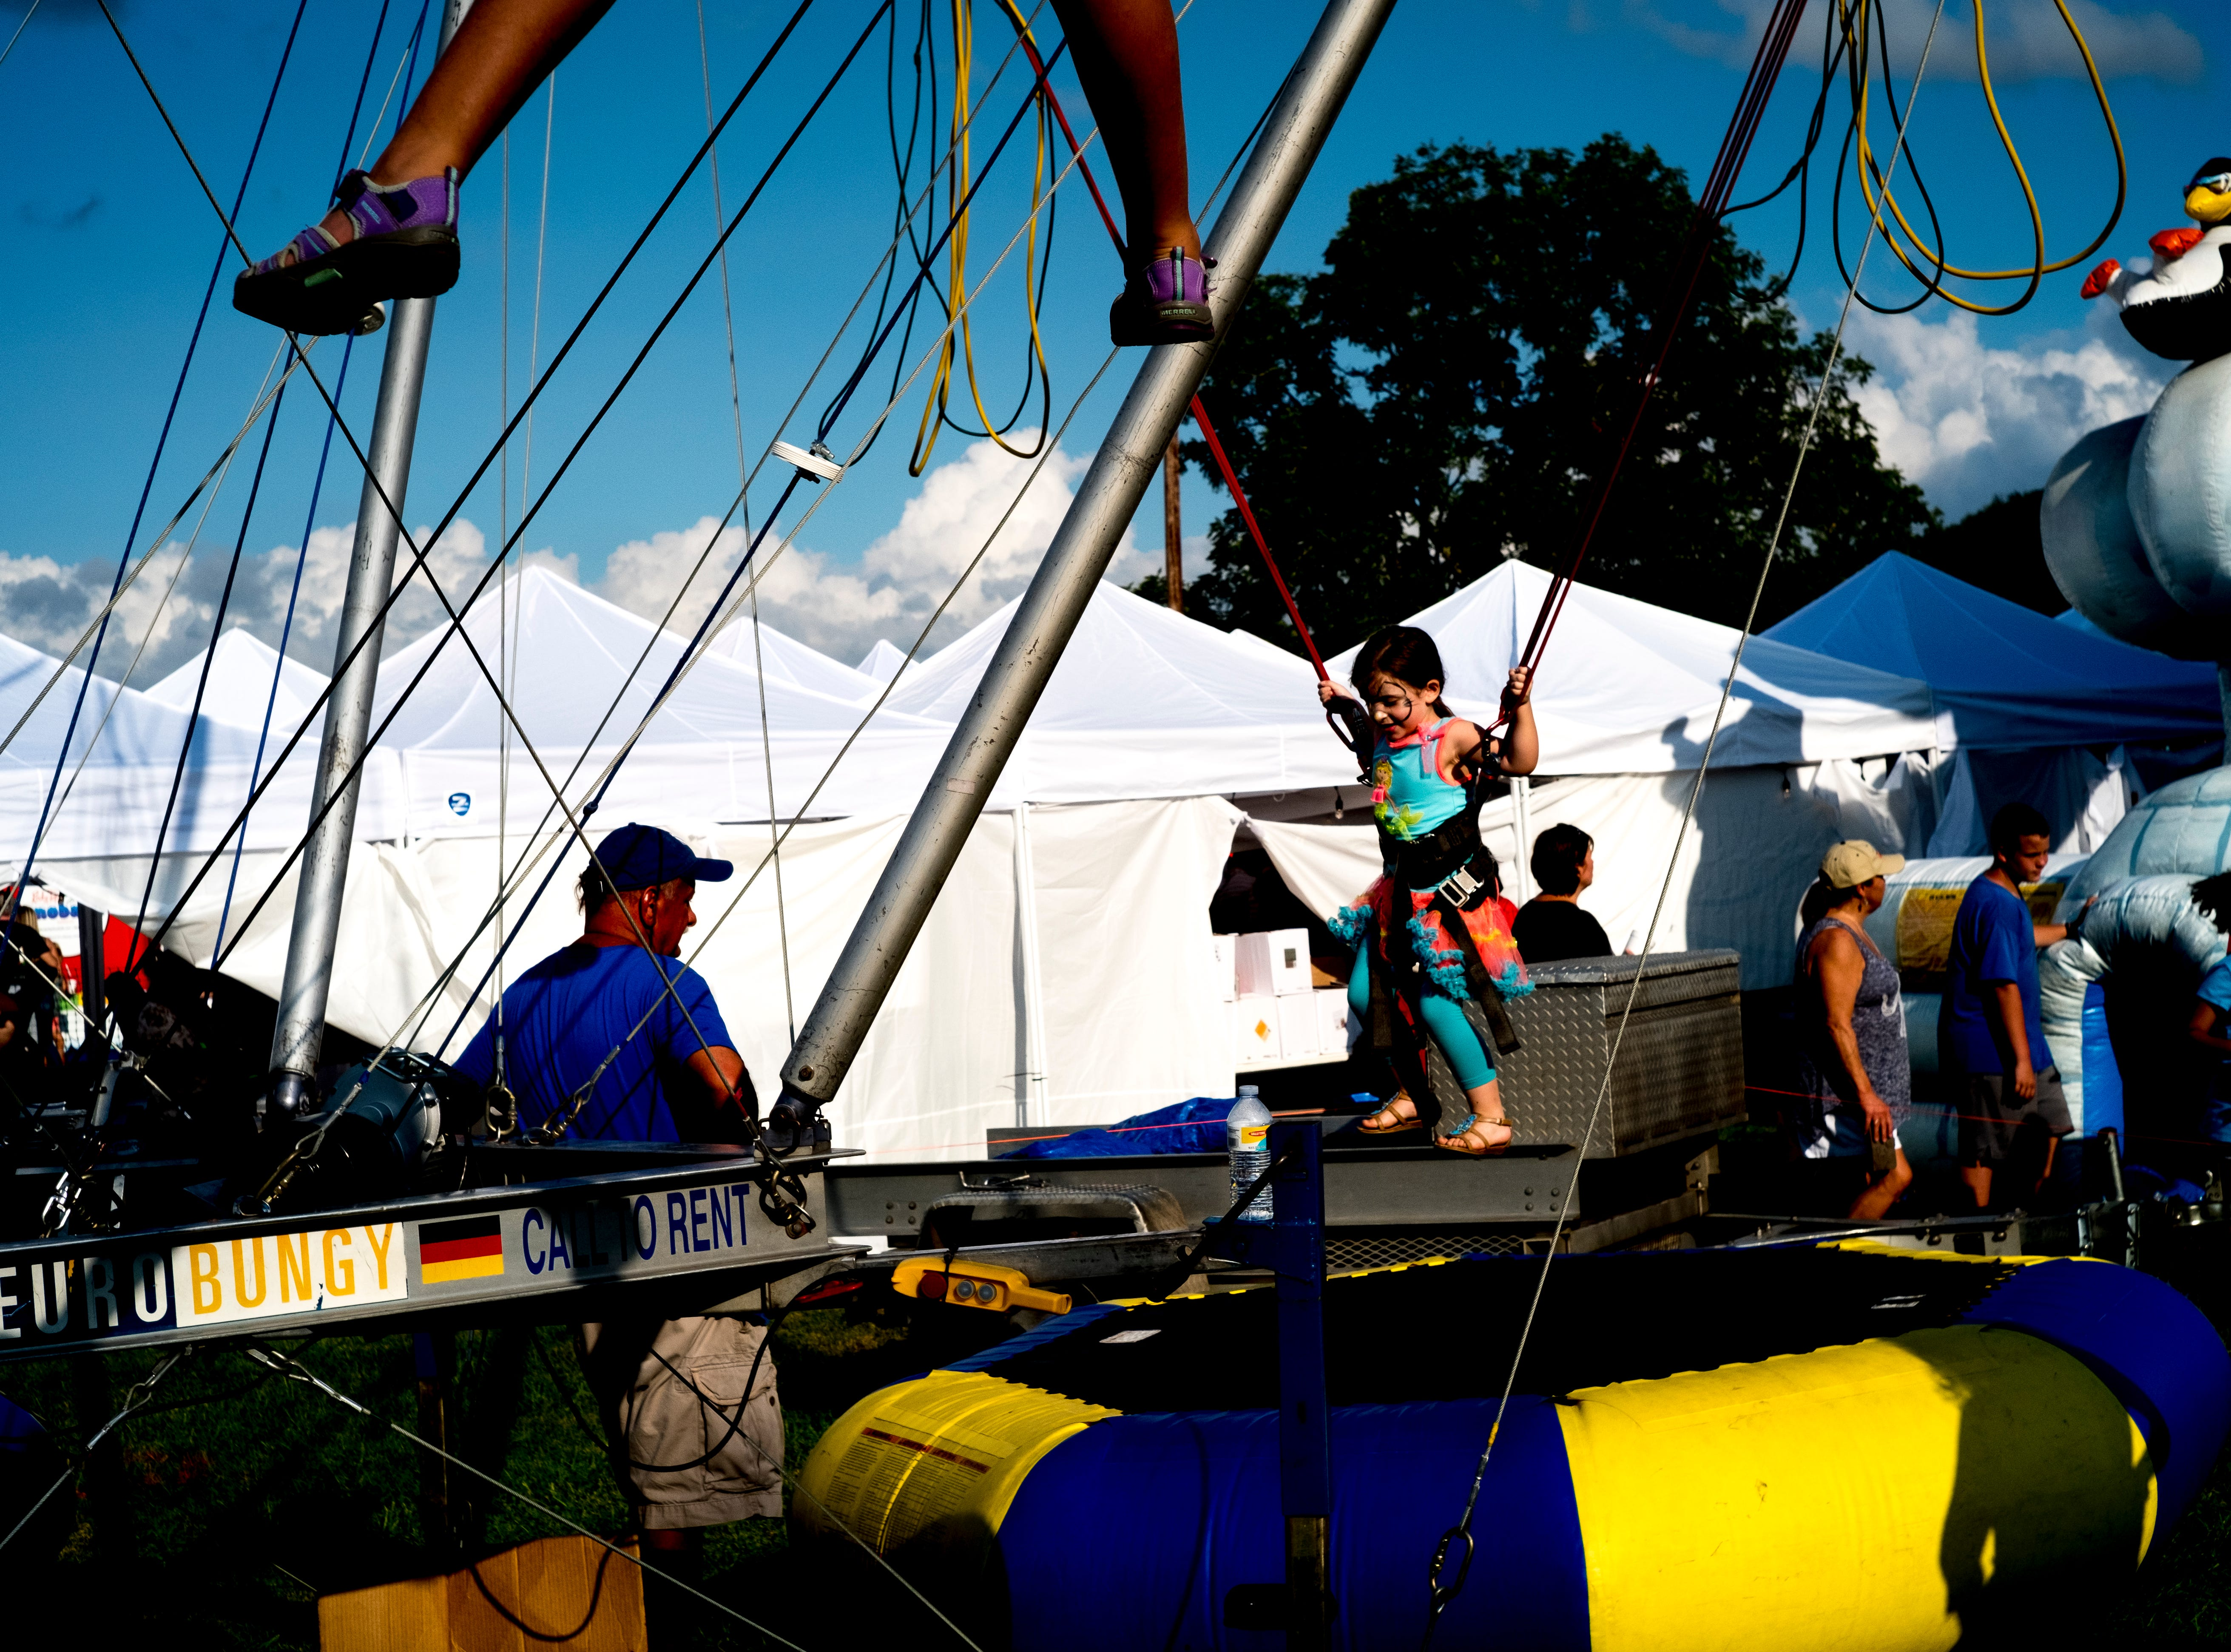 Kids play on a trampoline at the second annual Smoky Mountain Balloon Festival in Townsend, Tennessee on Saturday, August 18, 2018. The festival featured several hot air balloons, food trucks, wine tasting and live entertainment.